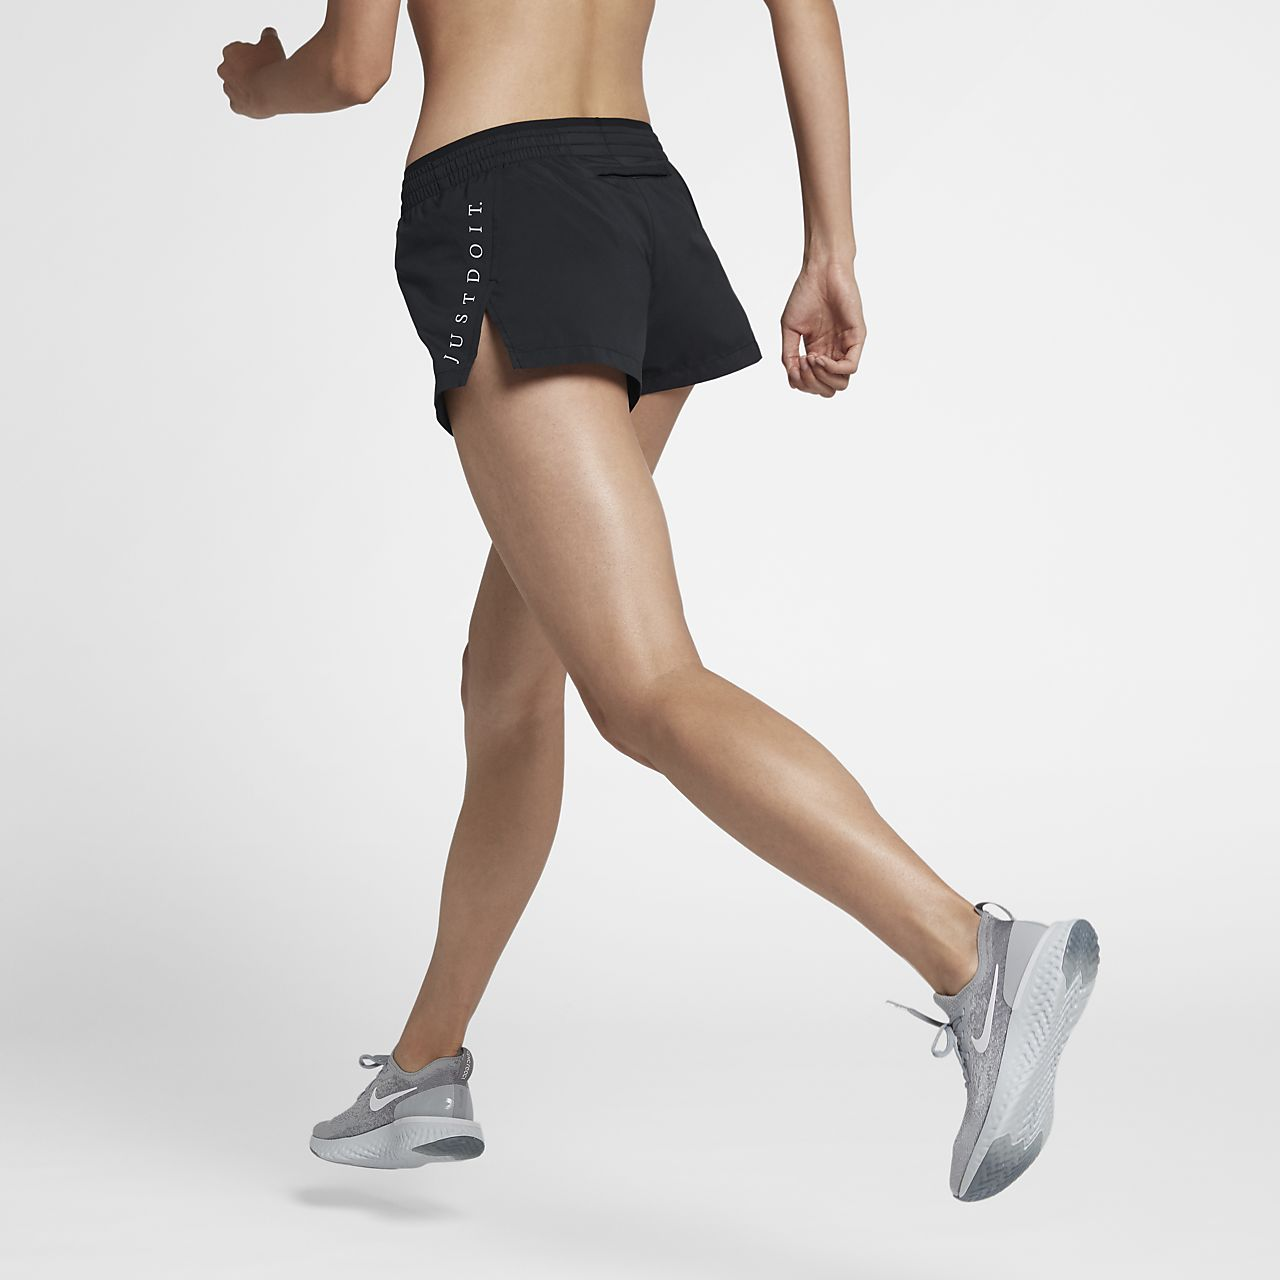 Nike Elevate Women's Running Shorts